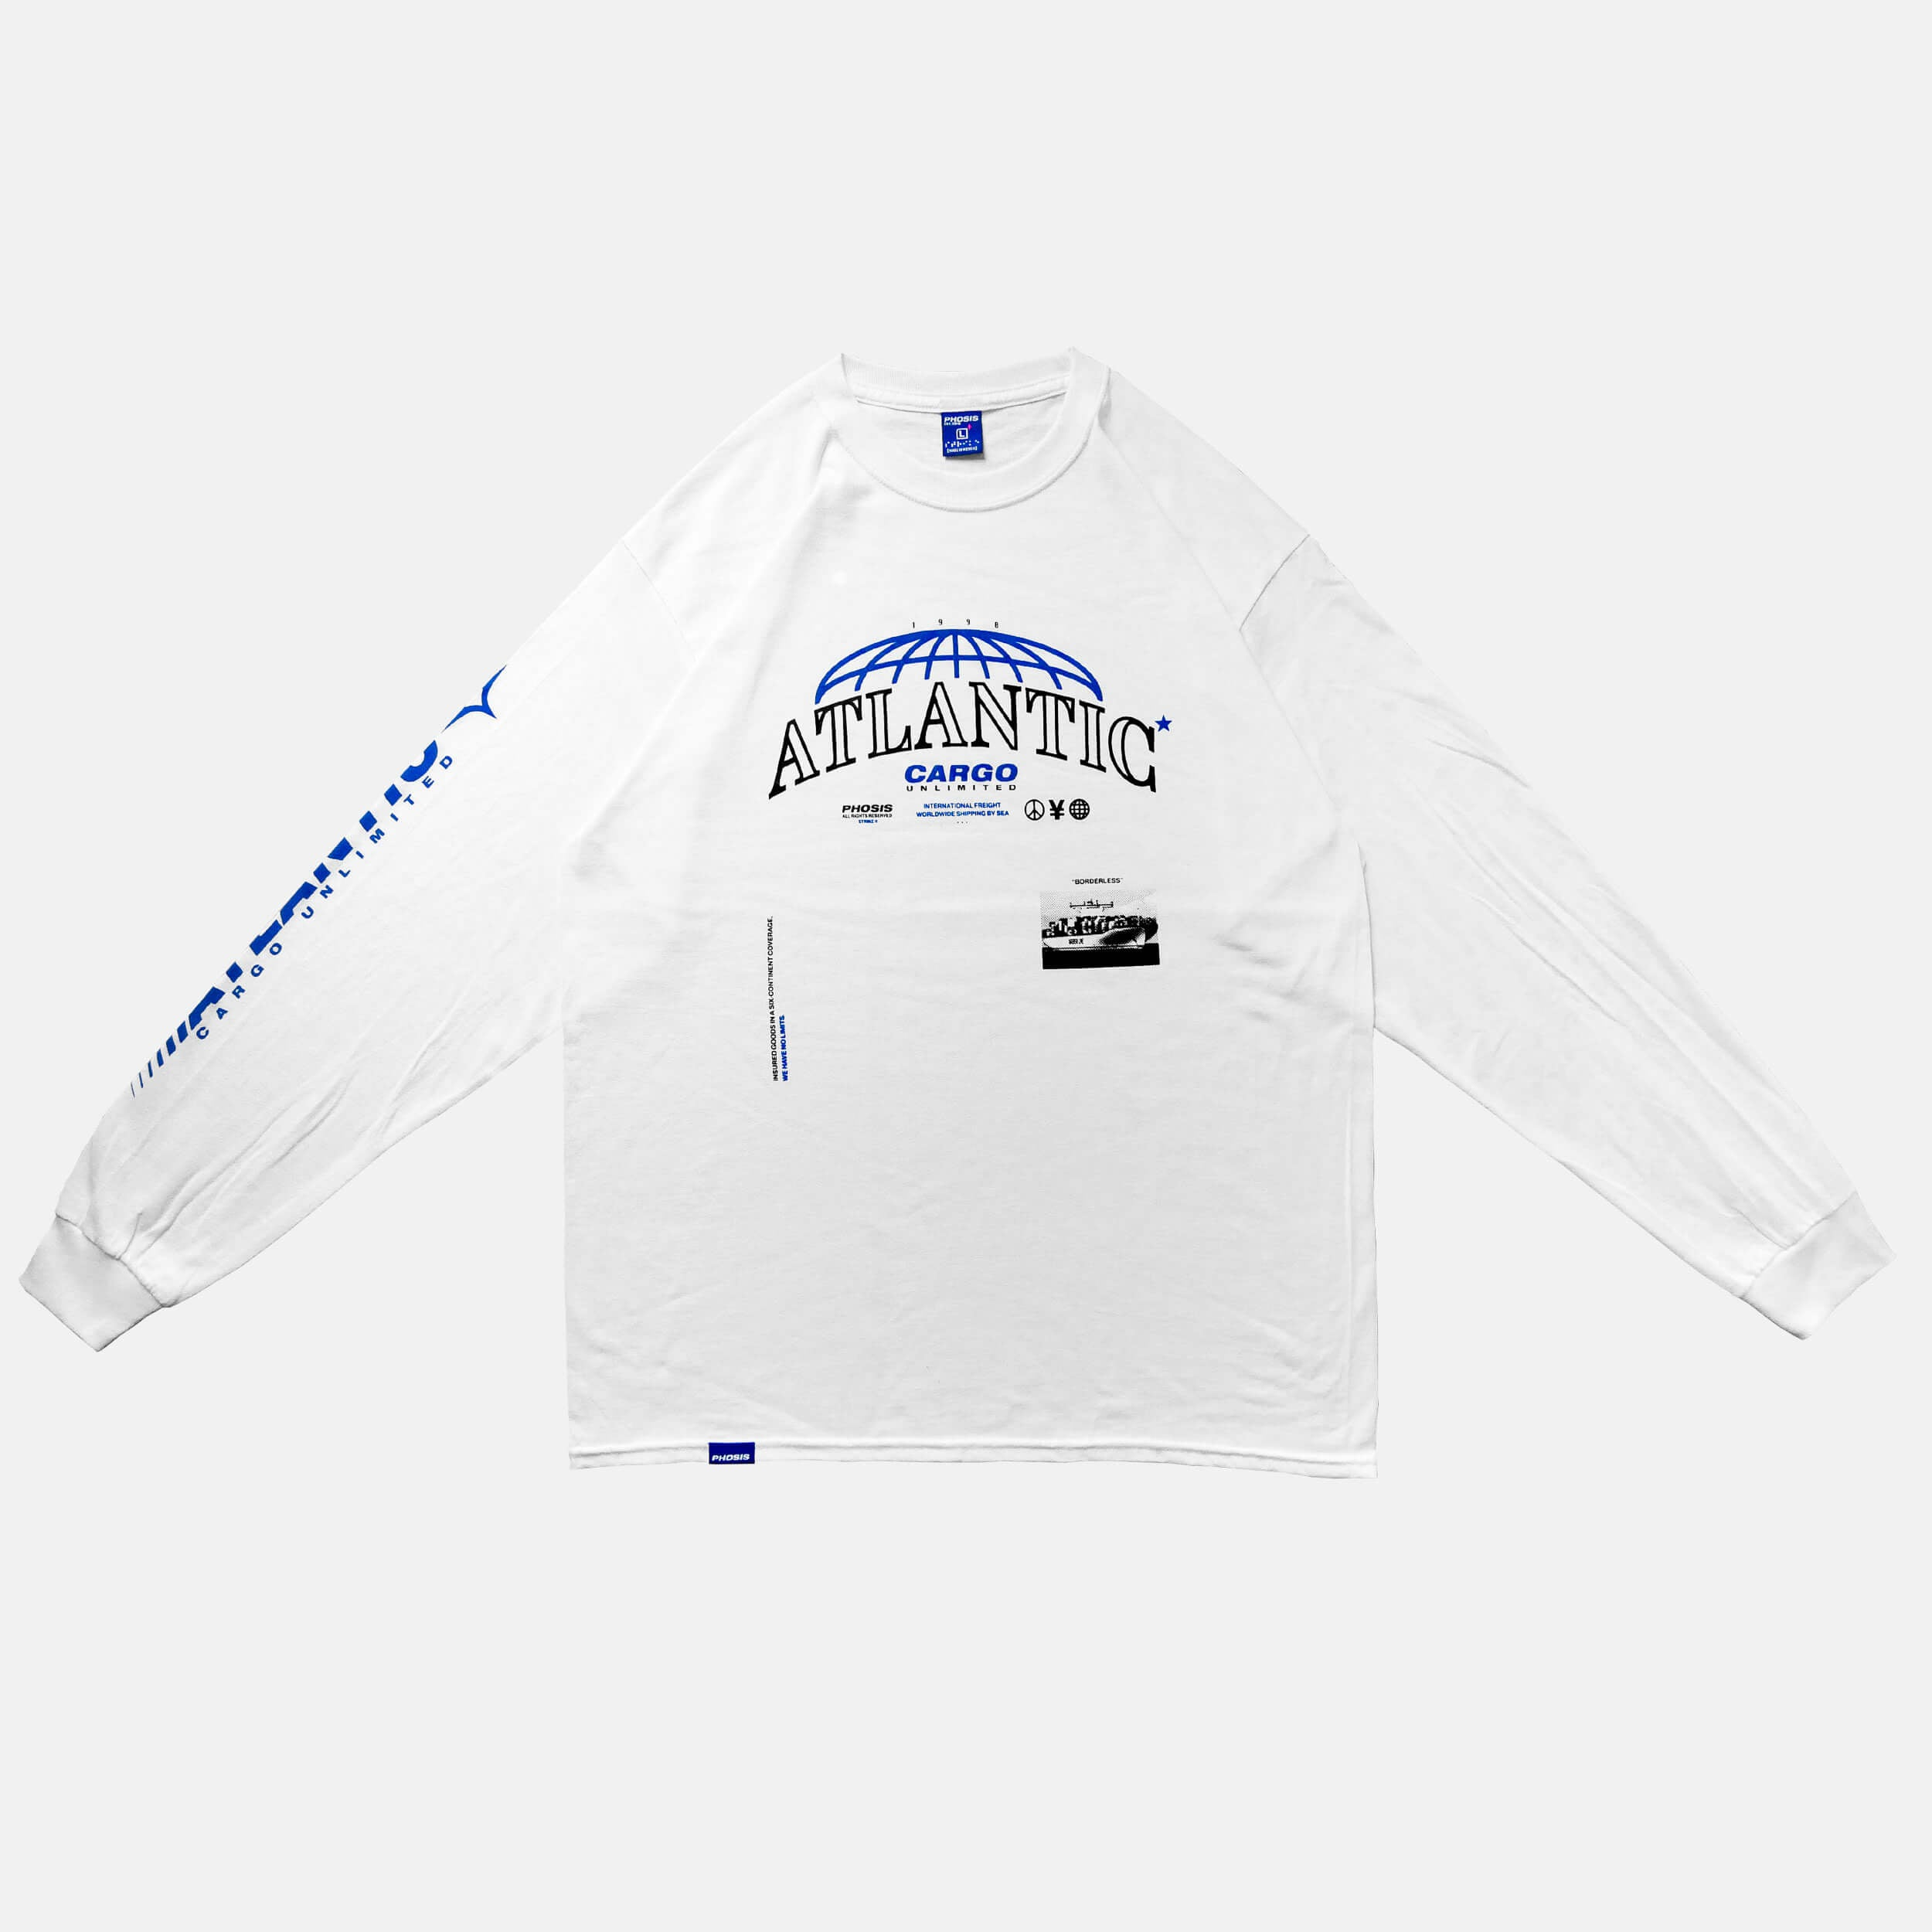 Front view of the screen-pinted ATLANTIC white long sleeve from PHOSIS Clothing